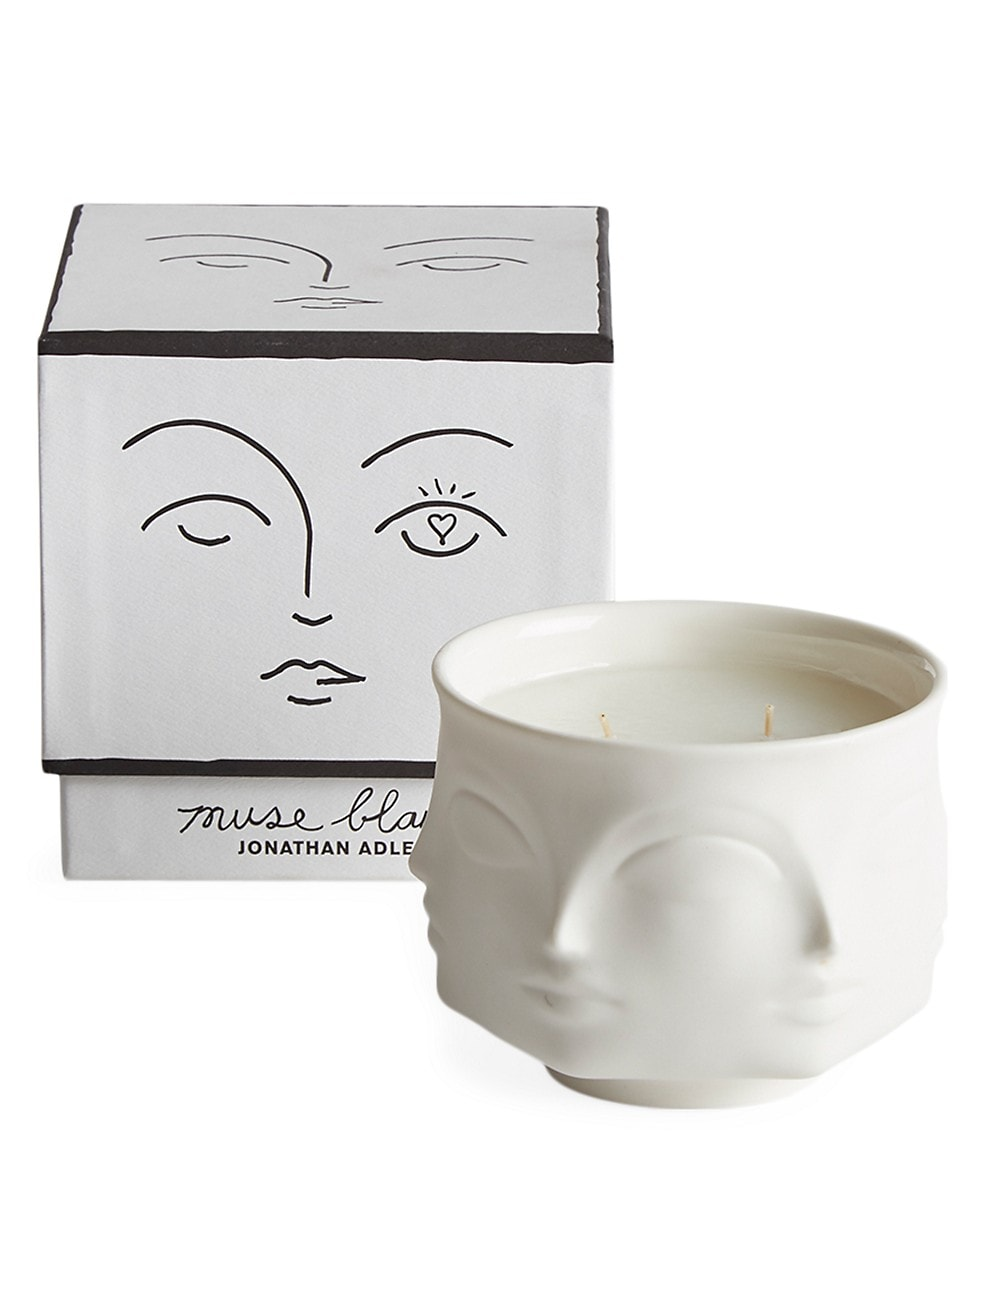 Jonathan Adler Muse Blanc Scented Candle